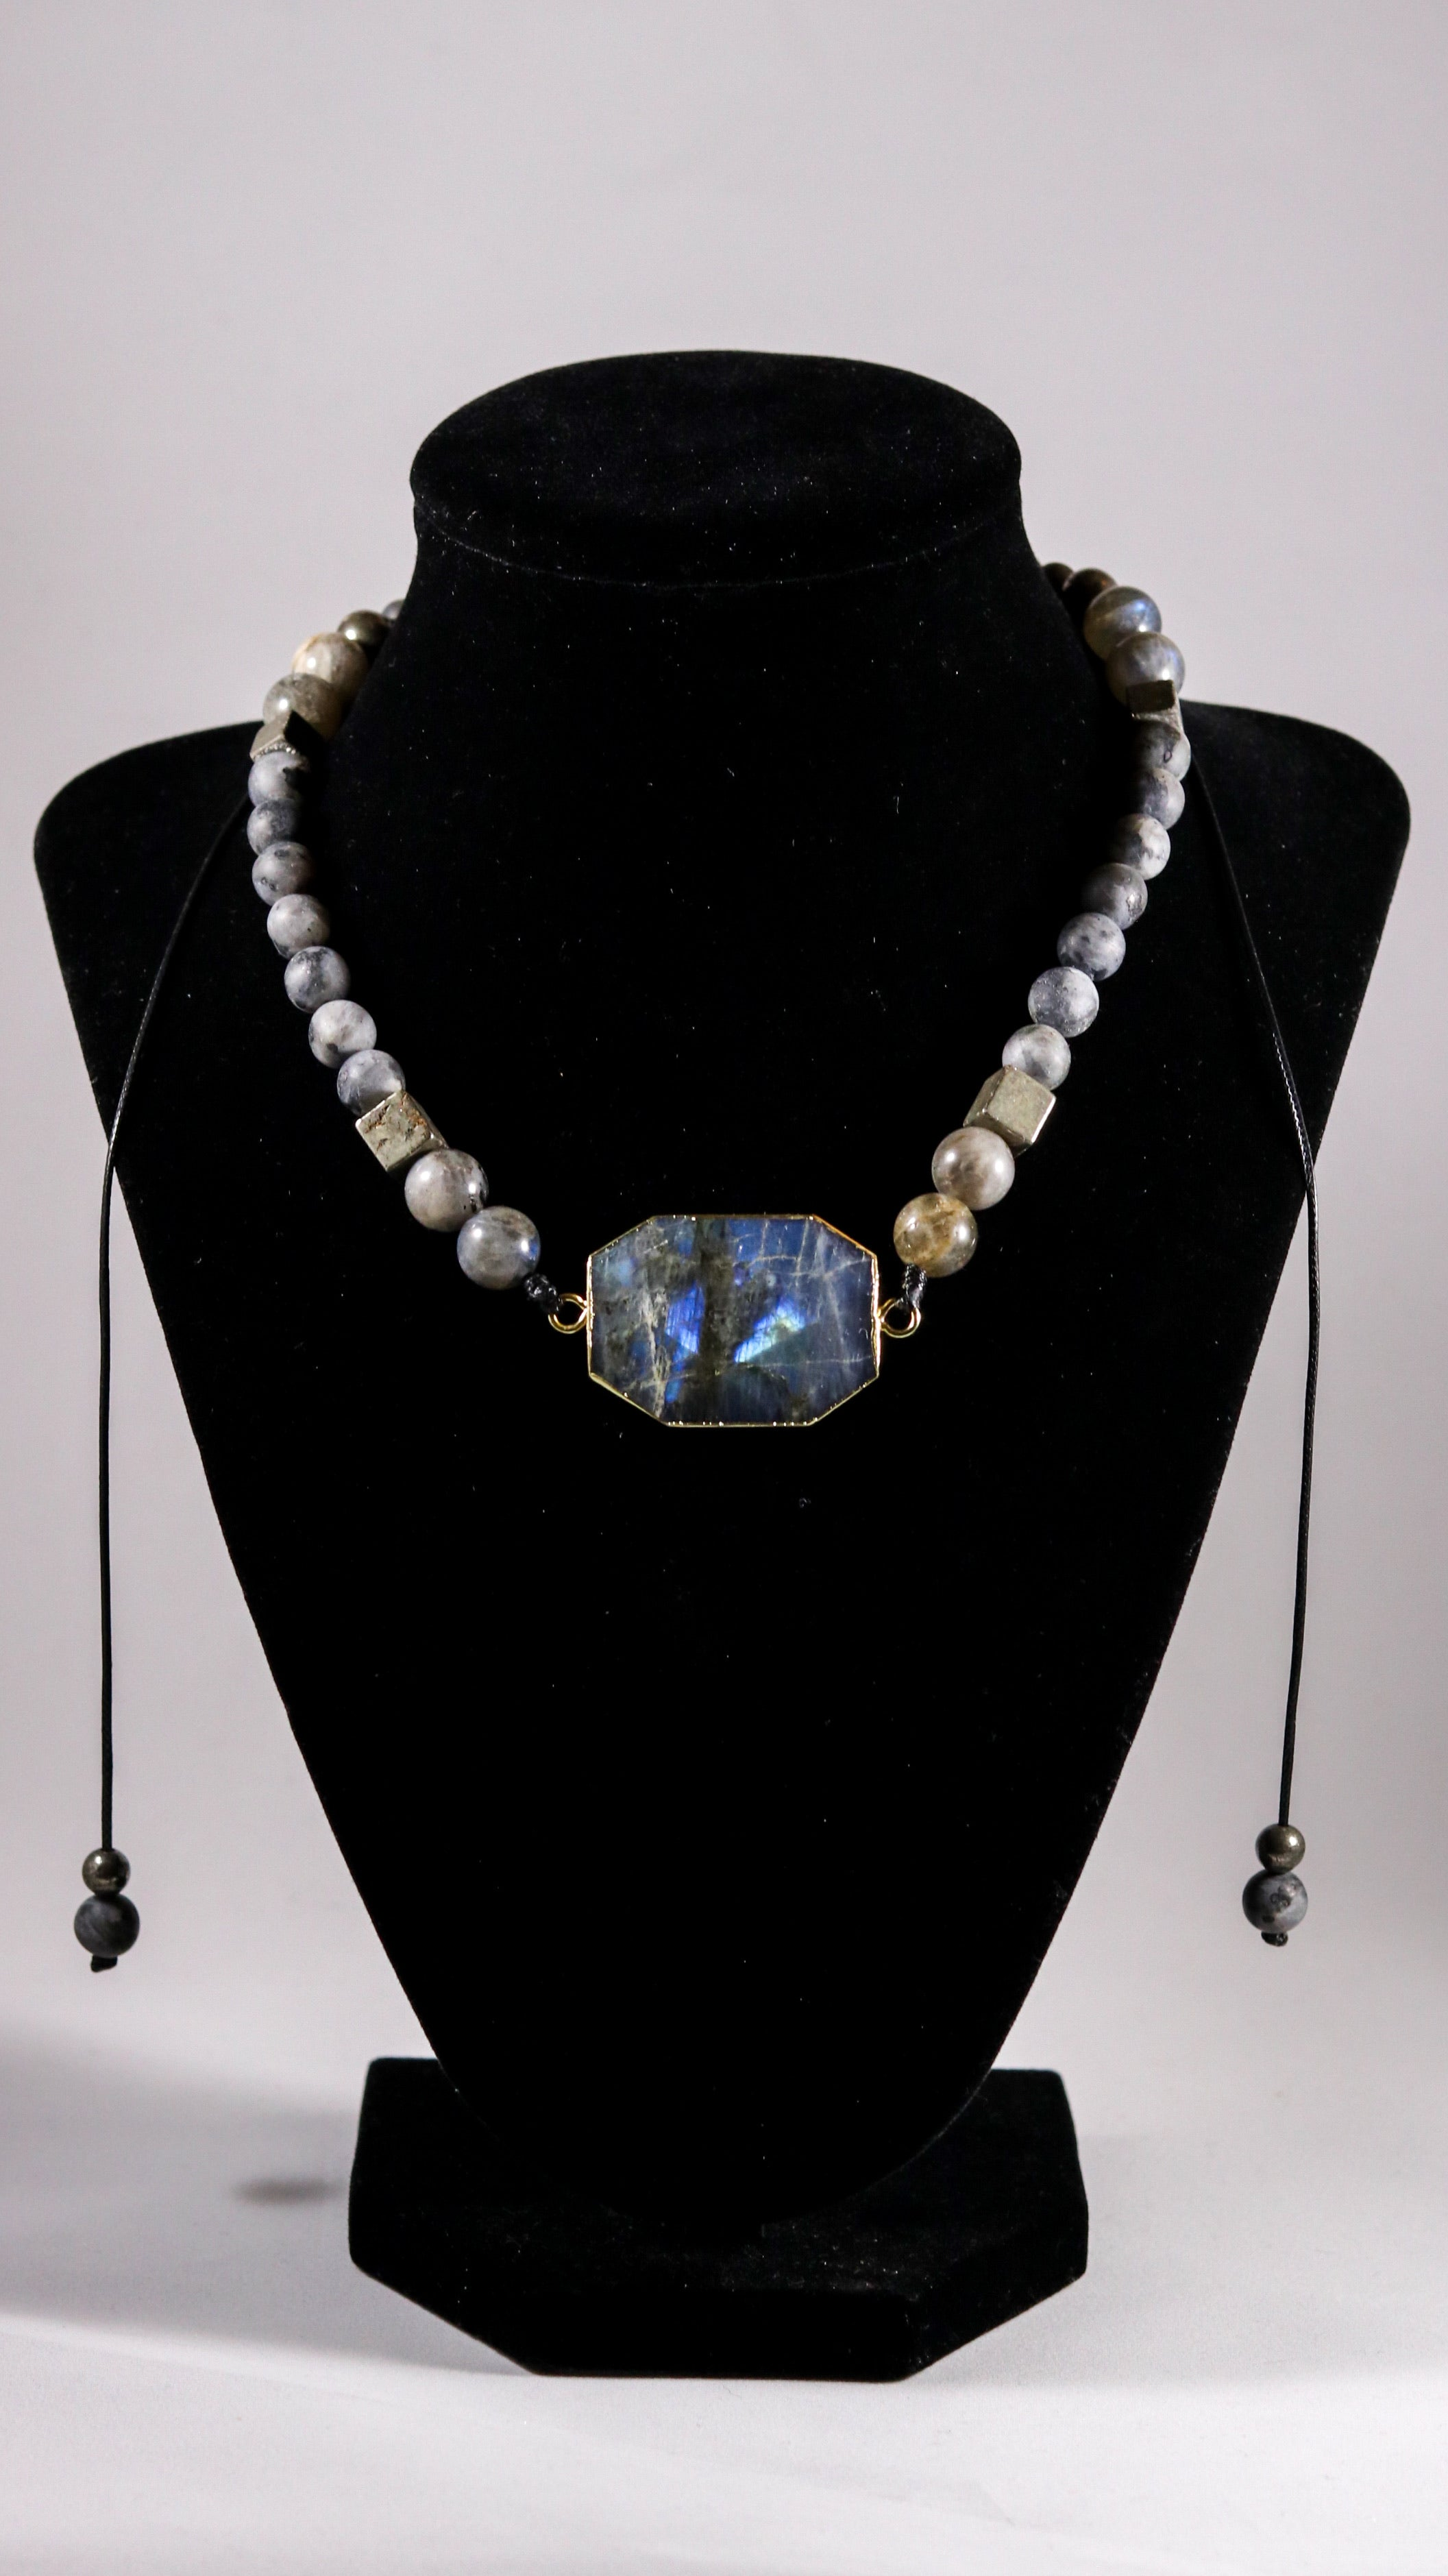 Flashy Labradorite beaded necklace with Black Moonstone/ Labradorite and Pyrite - BurzanDesign